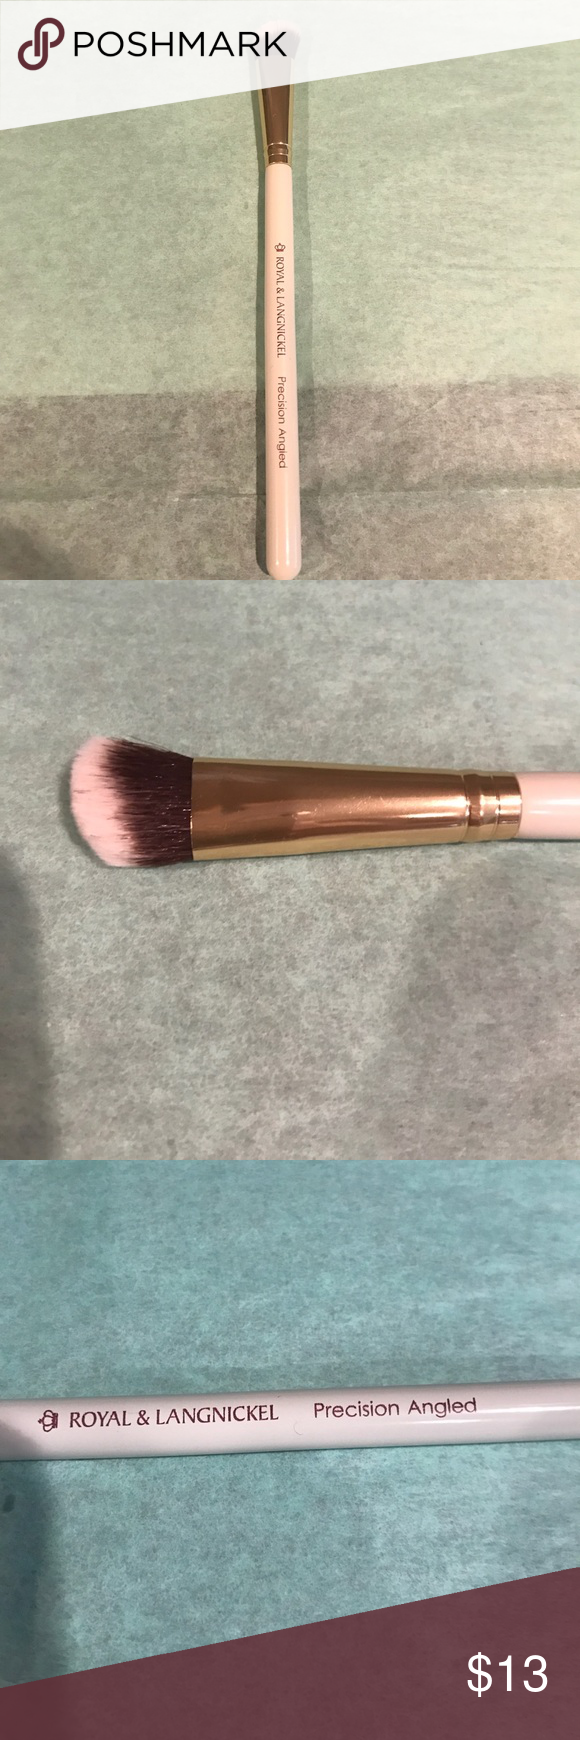 Brand new Royal &Langnickel Precision Angled brush NWT